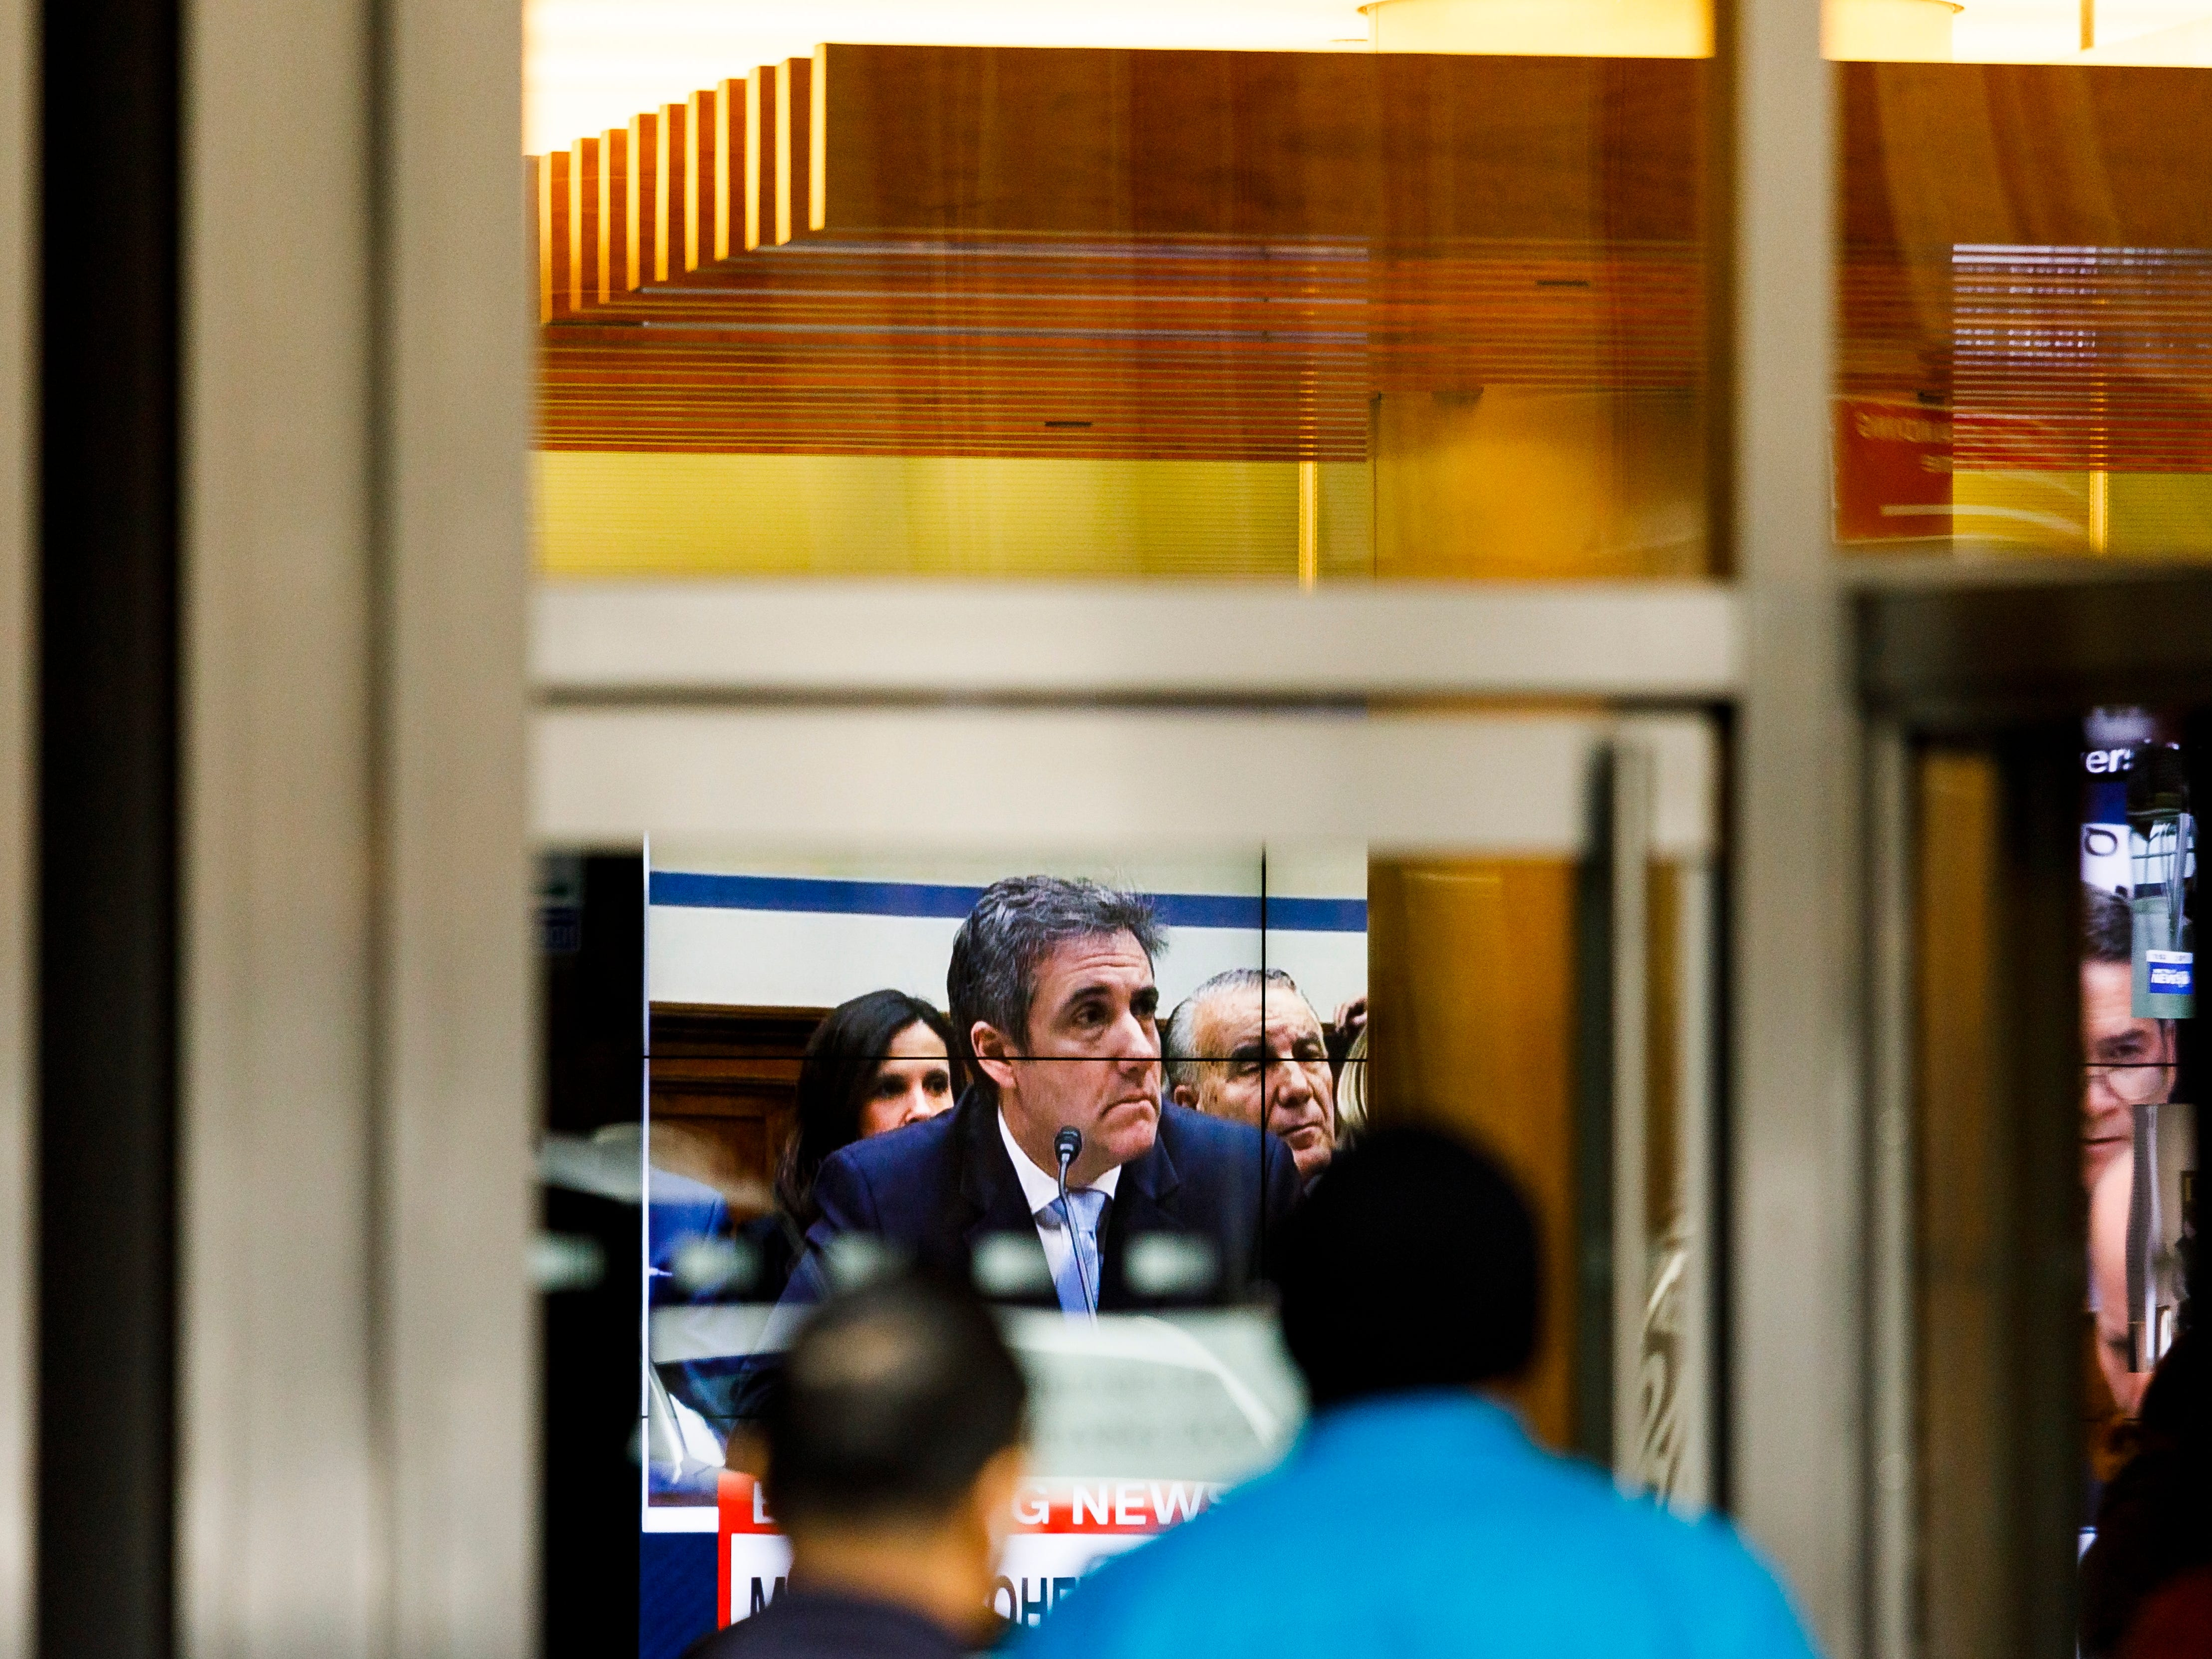 People watch Michael Cohen, President Donald Trump's former personal attorney, testifies before a congressional committee on a television in a building lobby in New York.